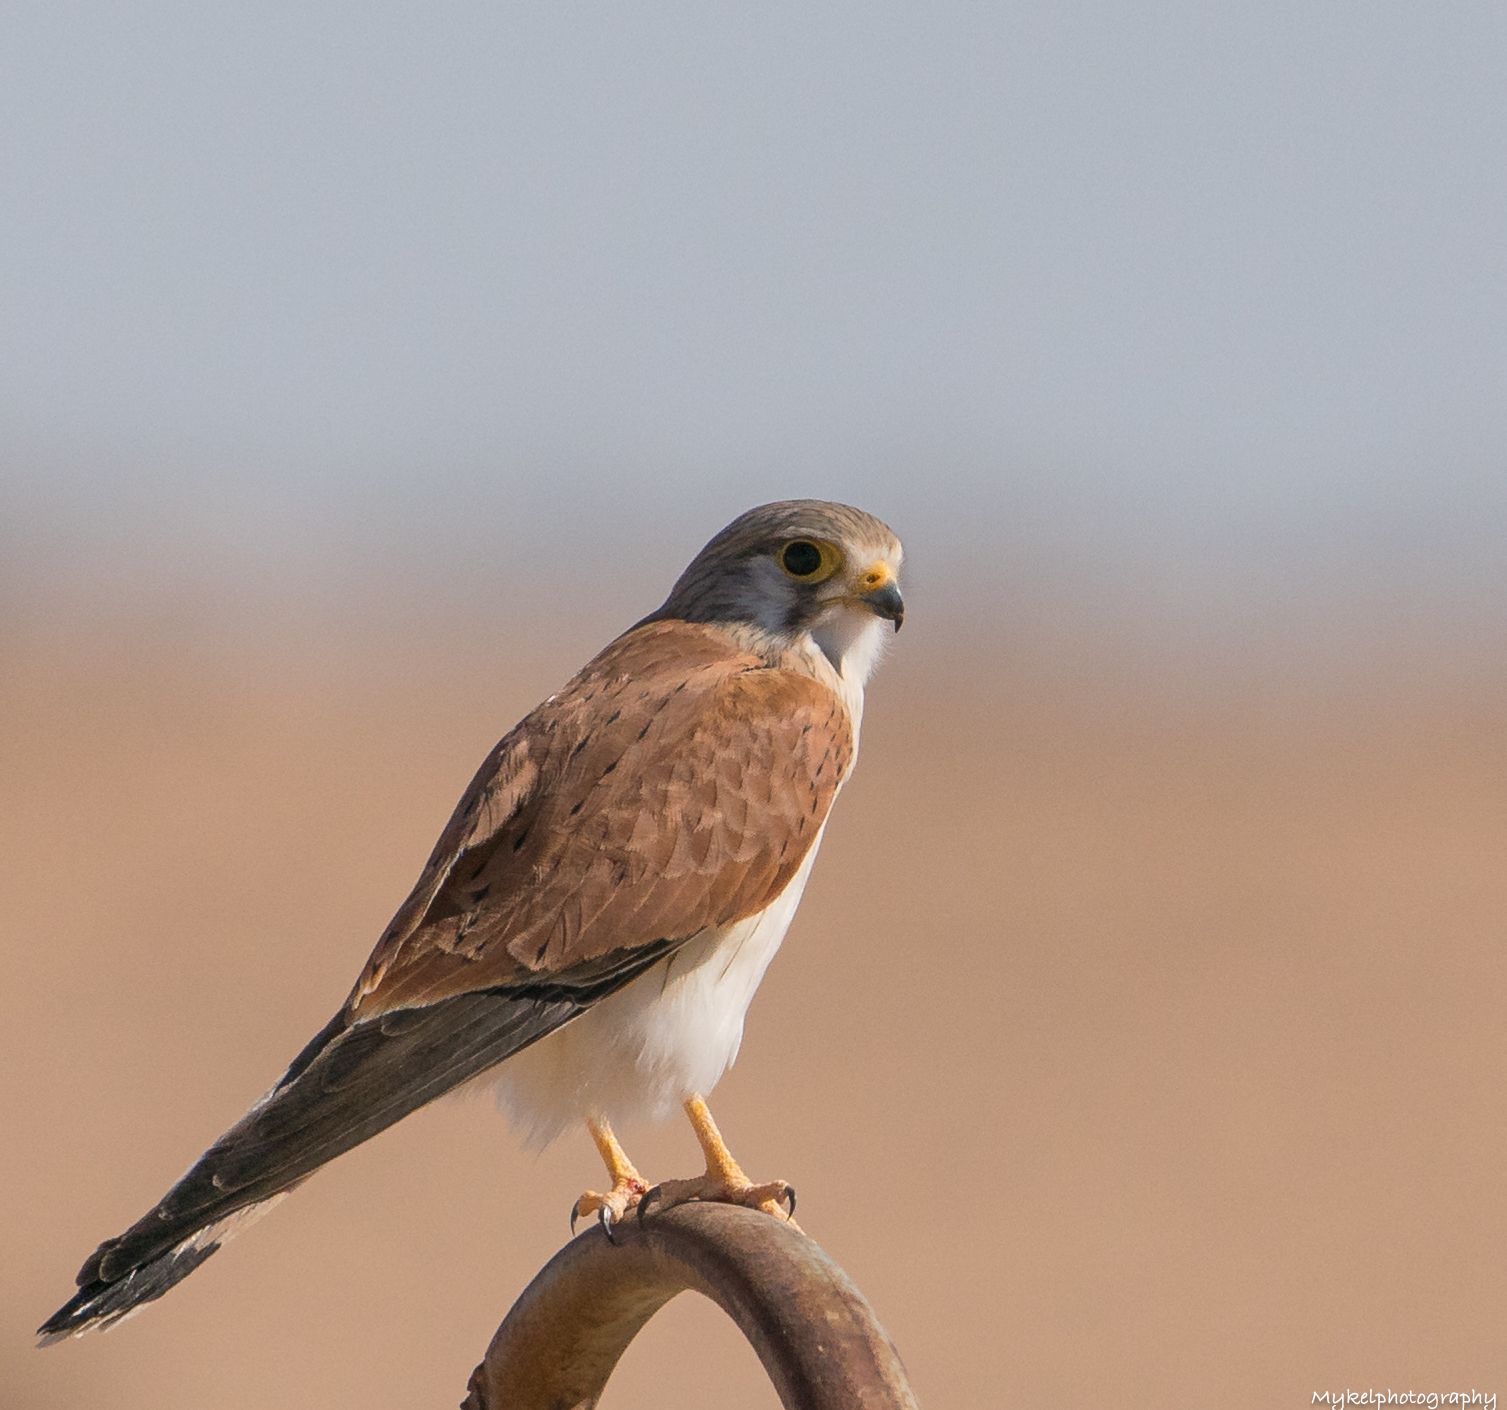 Nankeen Kestrel  Falco cenchroides  Falconidae  The Nankeen Kestrel is widespread in Australia, though it occurs only sporadically in Tasmania. Kestrels usually occur in open country, such as grasslands and farmland, and avoid dense forests unless they have been opened up by clearing. They hunt a variety of prey, including small mammals (especially mice), small birds, lizards and insects.